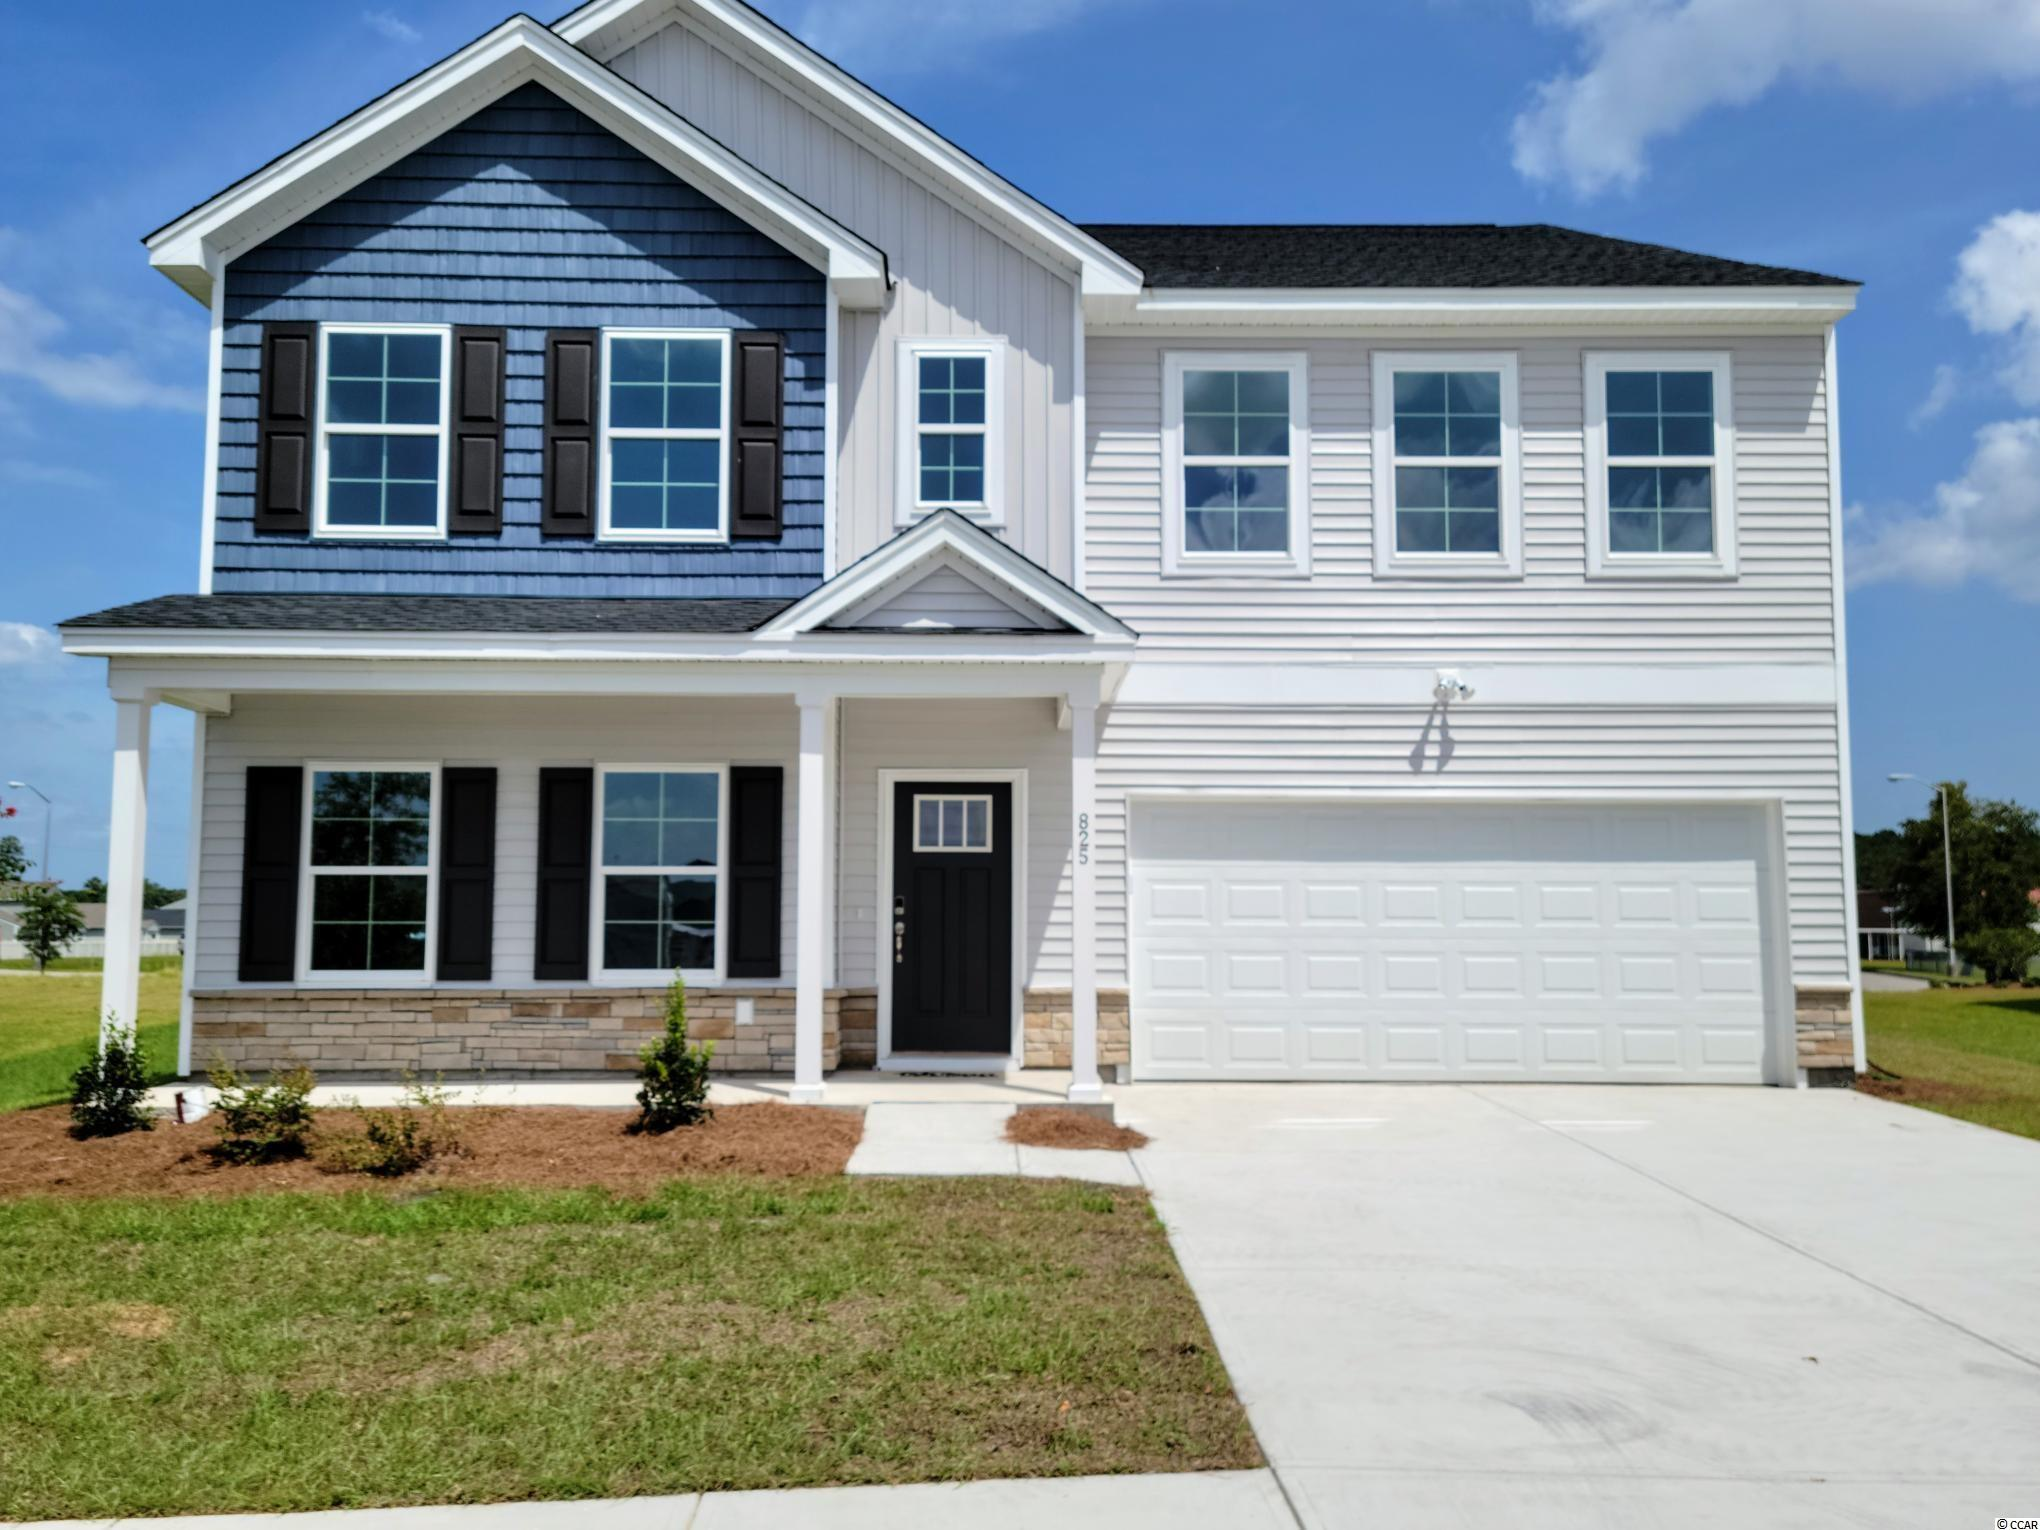 A new community in Conway! Tree lined streets with sidewalks on both sides, Coastal Point West is the neighborhood you've been waiting for! With 9 home plans to choose from, ranging from 3-6 bedrooms, 2-4.5 baths, 1,264 - 3,049 Htd Sq Ft, Coastal Point West is sure to have the home you're looking for!